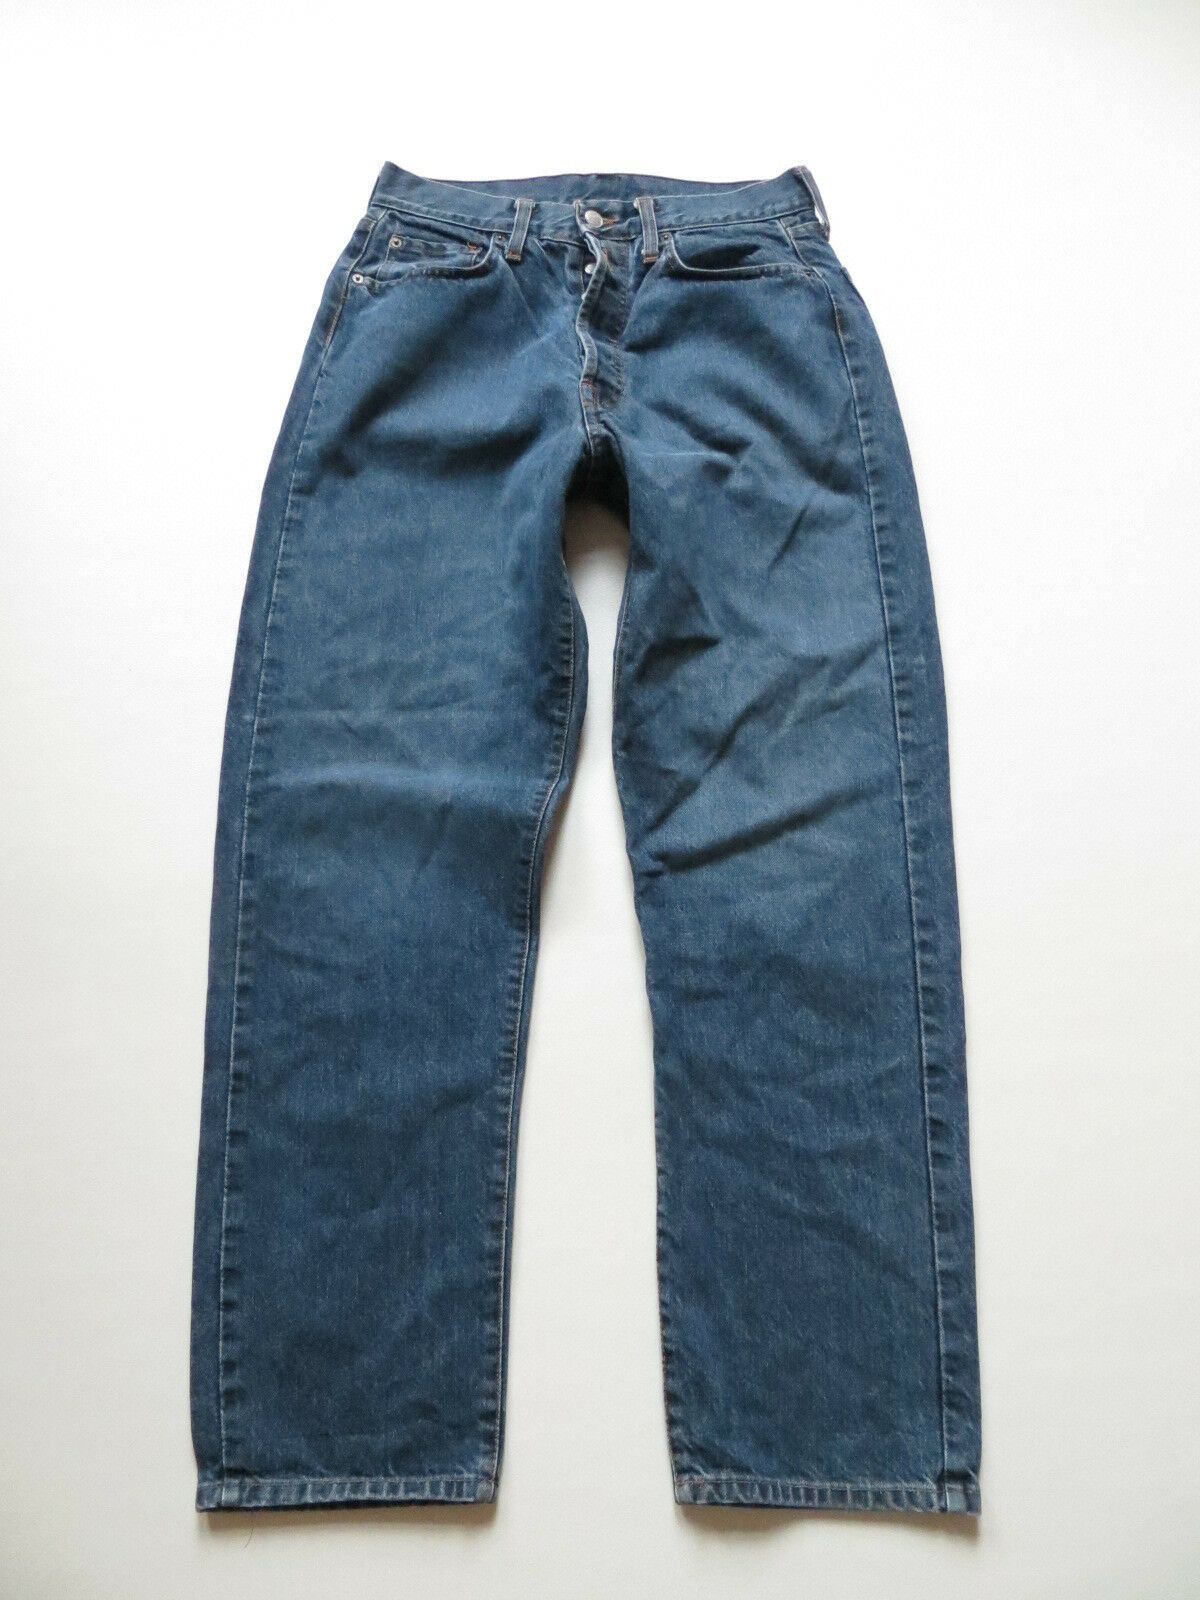 Replay 901 SHORT Jeans Hose W 31  L 32, oldschool stonewashed Denim, Klassiker